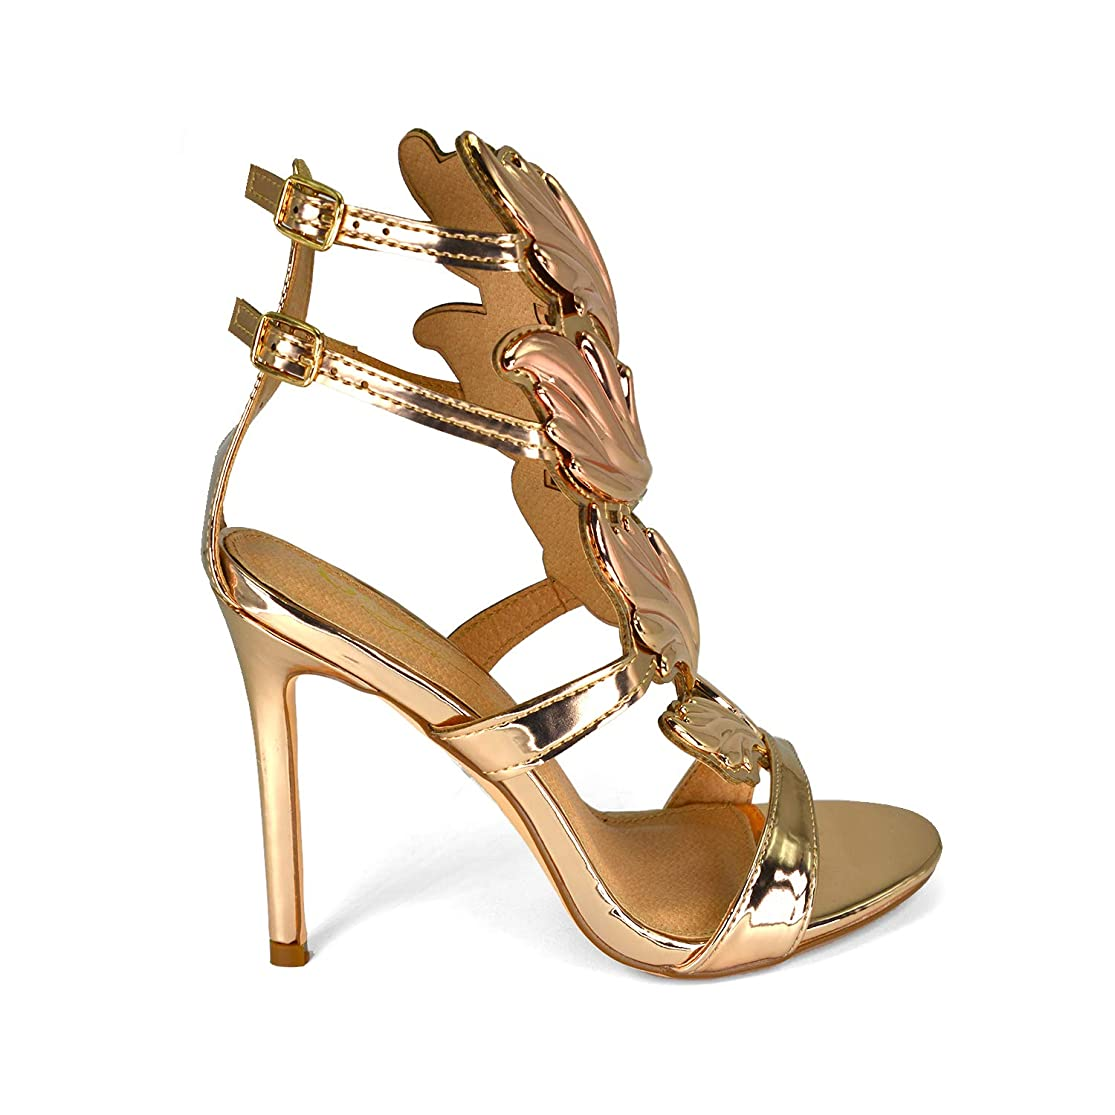 Olivia and Jaymes Fashionable Winged Open Toe High Heel Ankle Strap Wing Sandals for Women lgfnjylq0